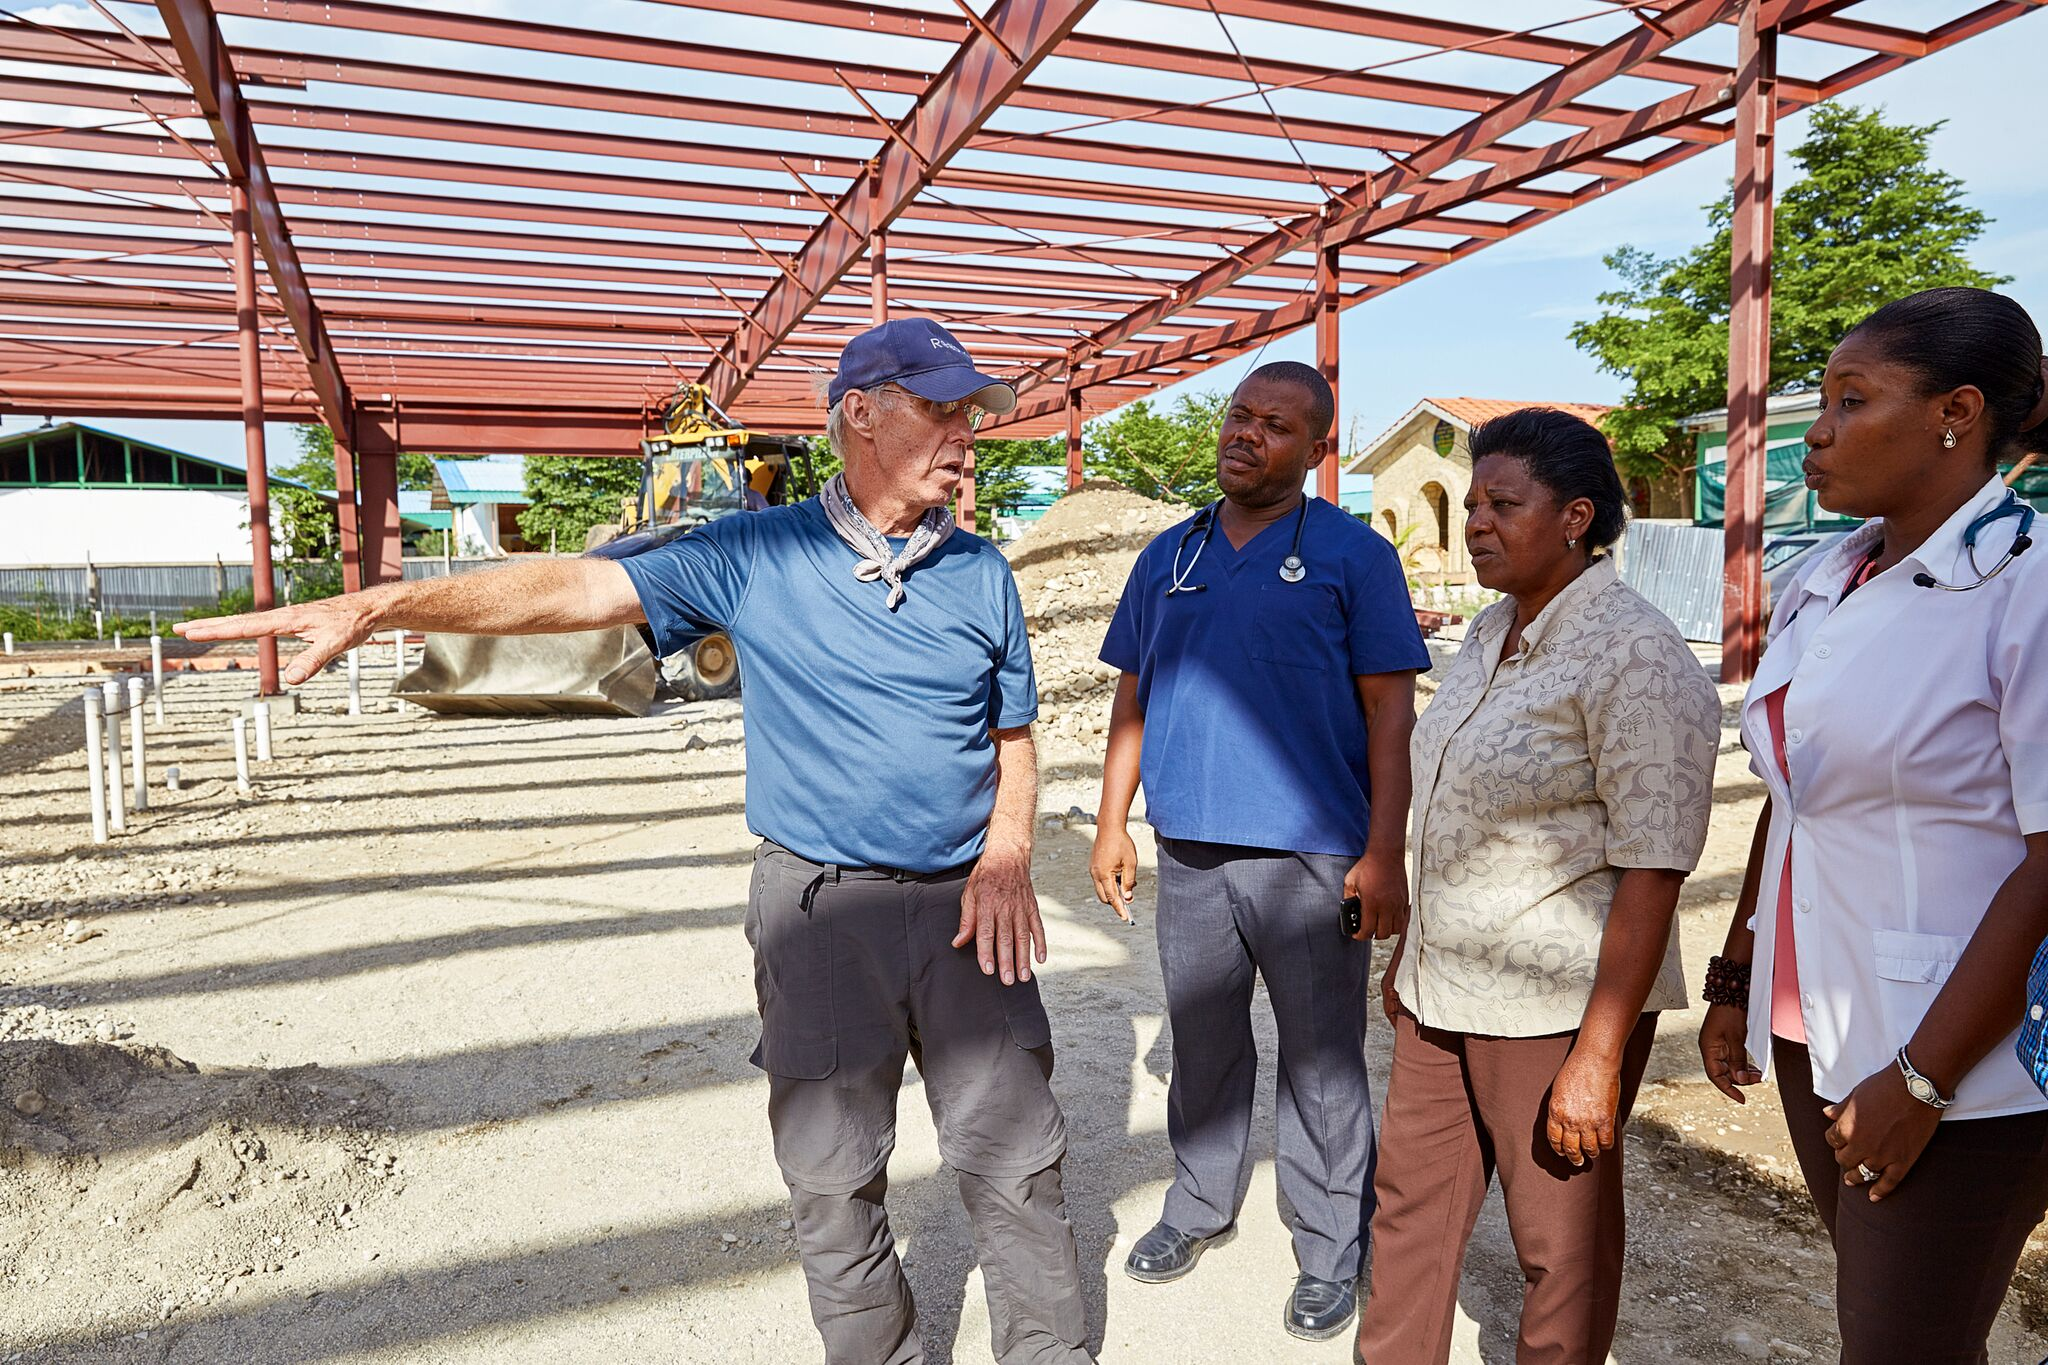 Advisory Board member Jim Corcoran consults with hospital staff on construction of the new medical facility